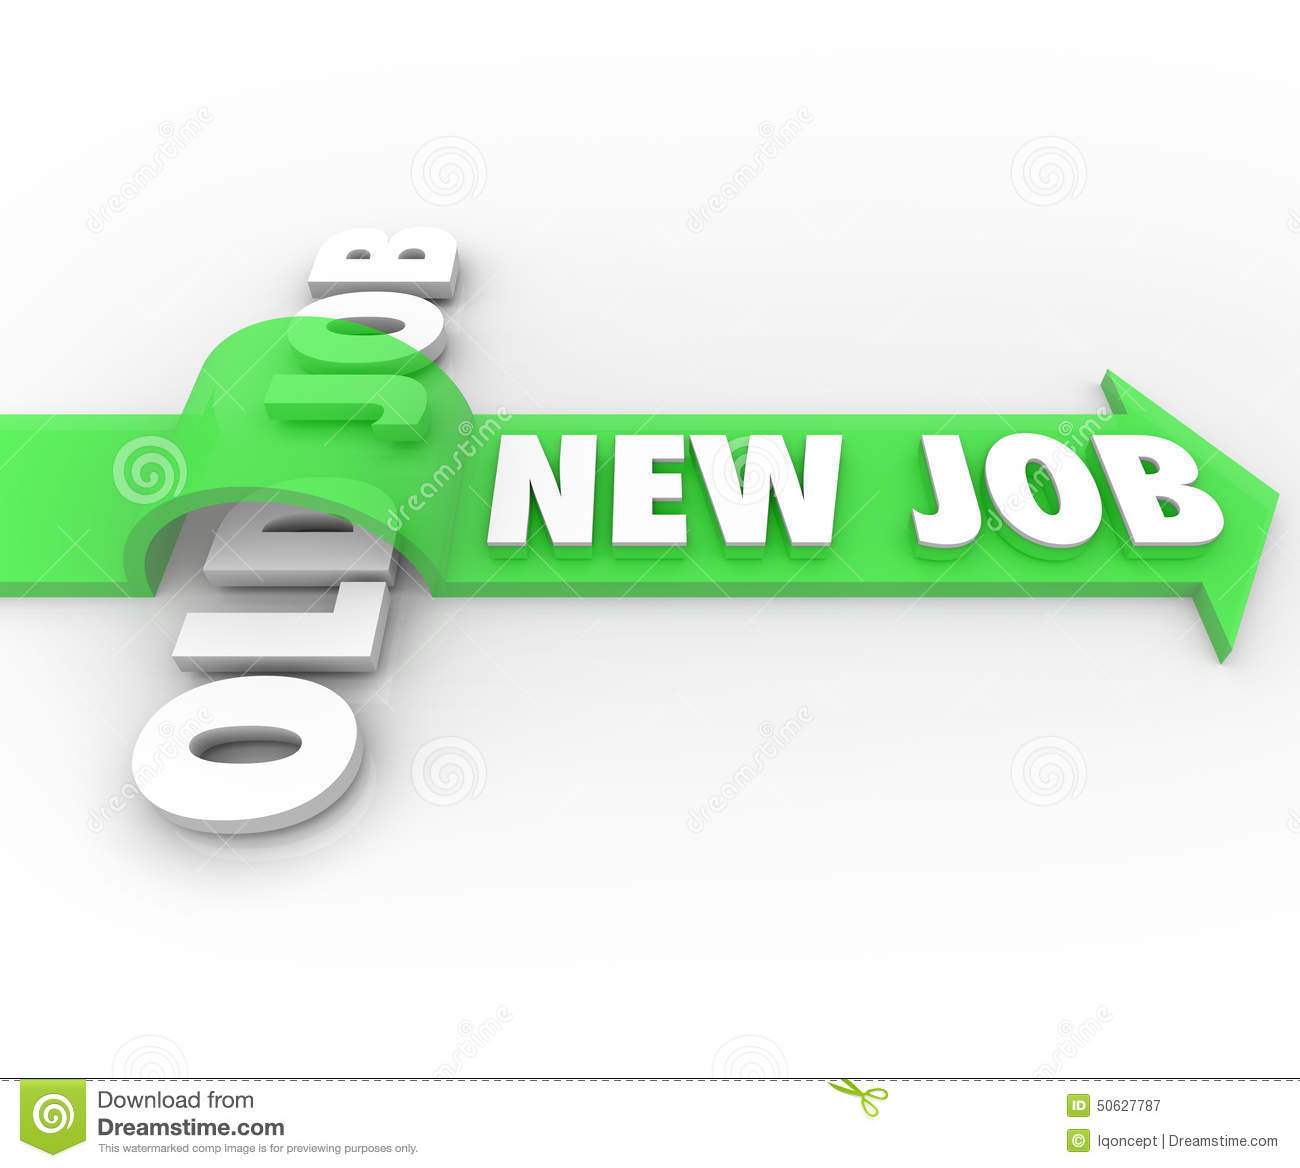 new job vs old job career change promotion better work stock new job vs old job career change promotion better work